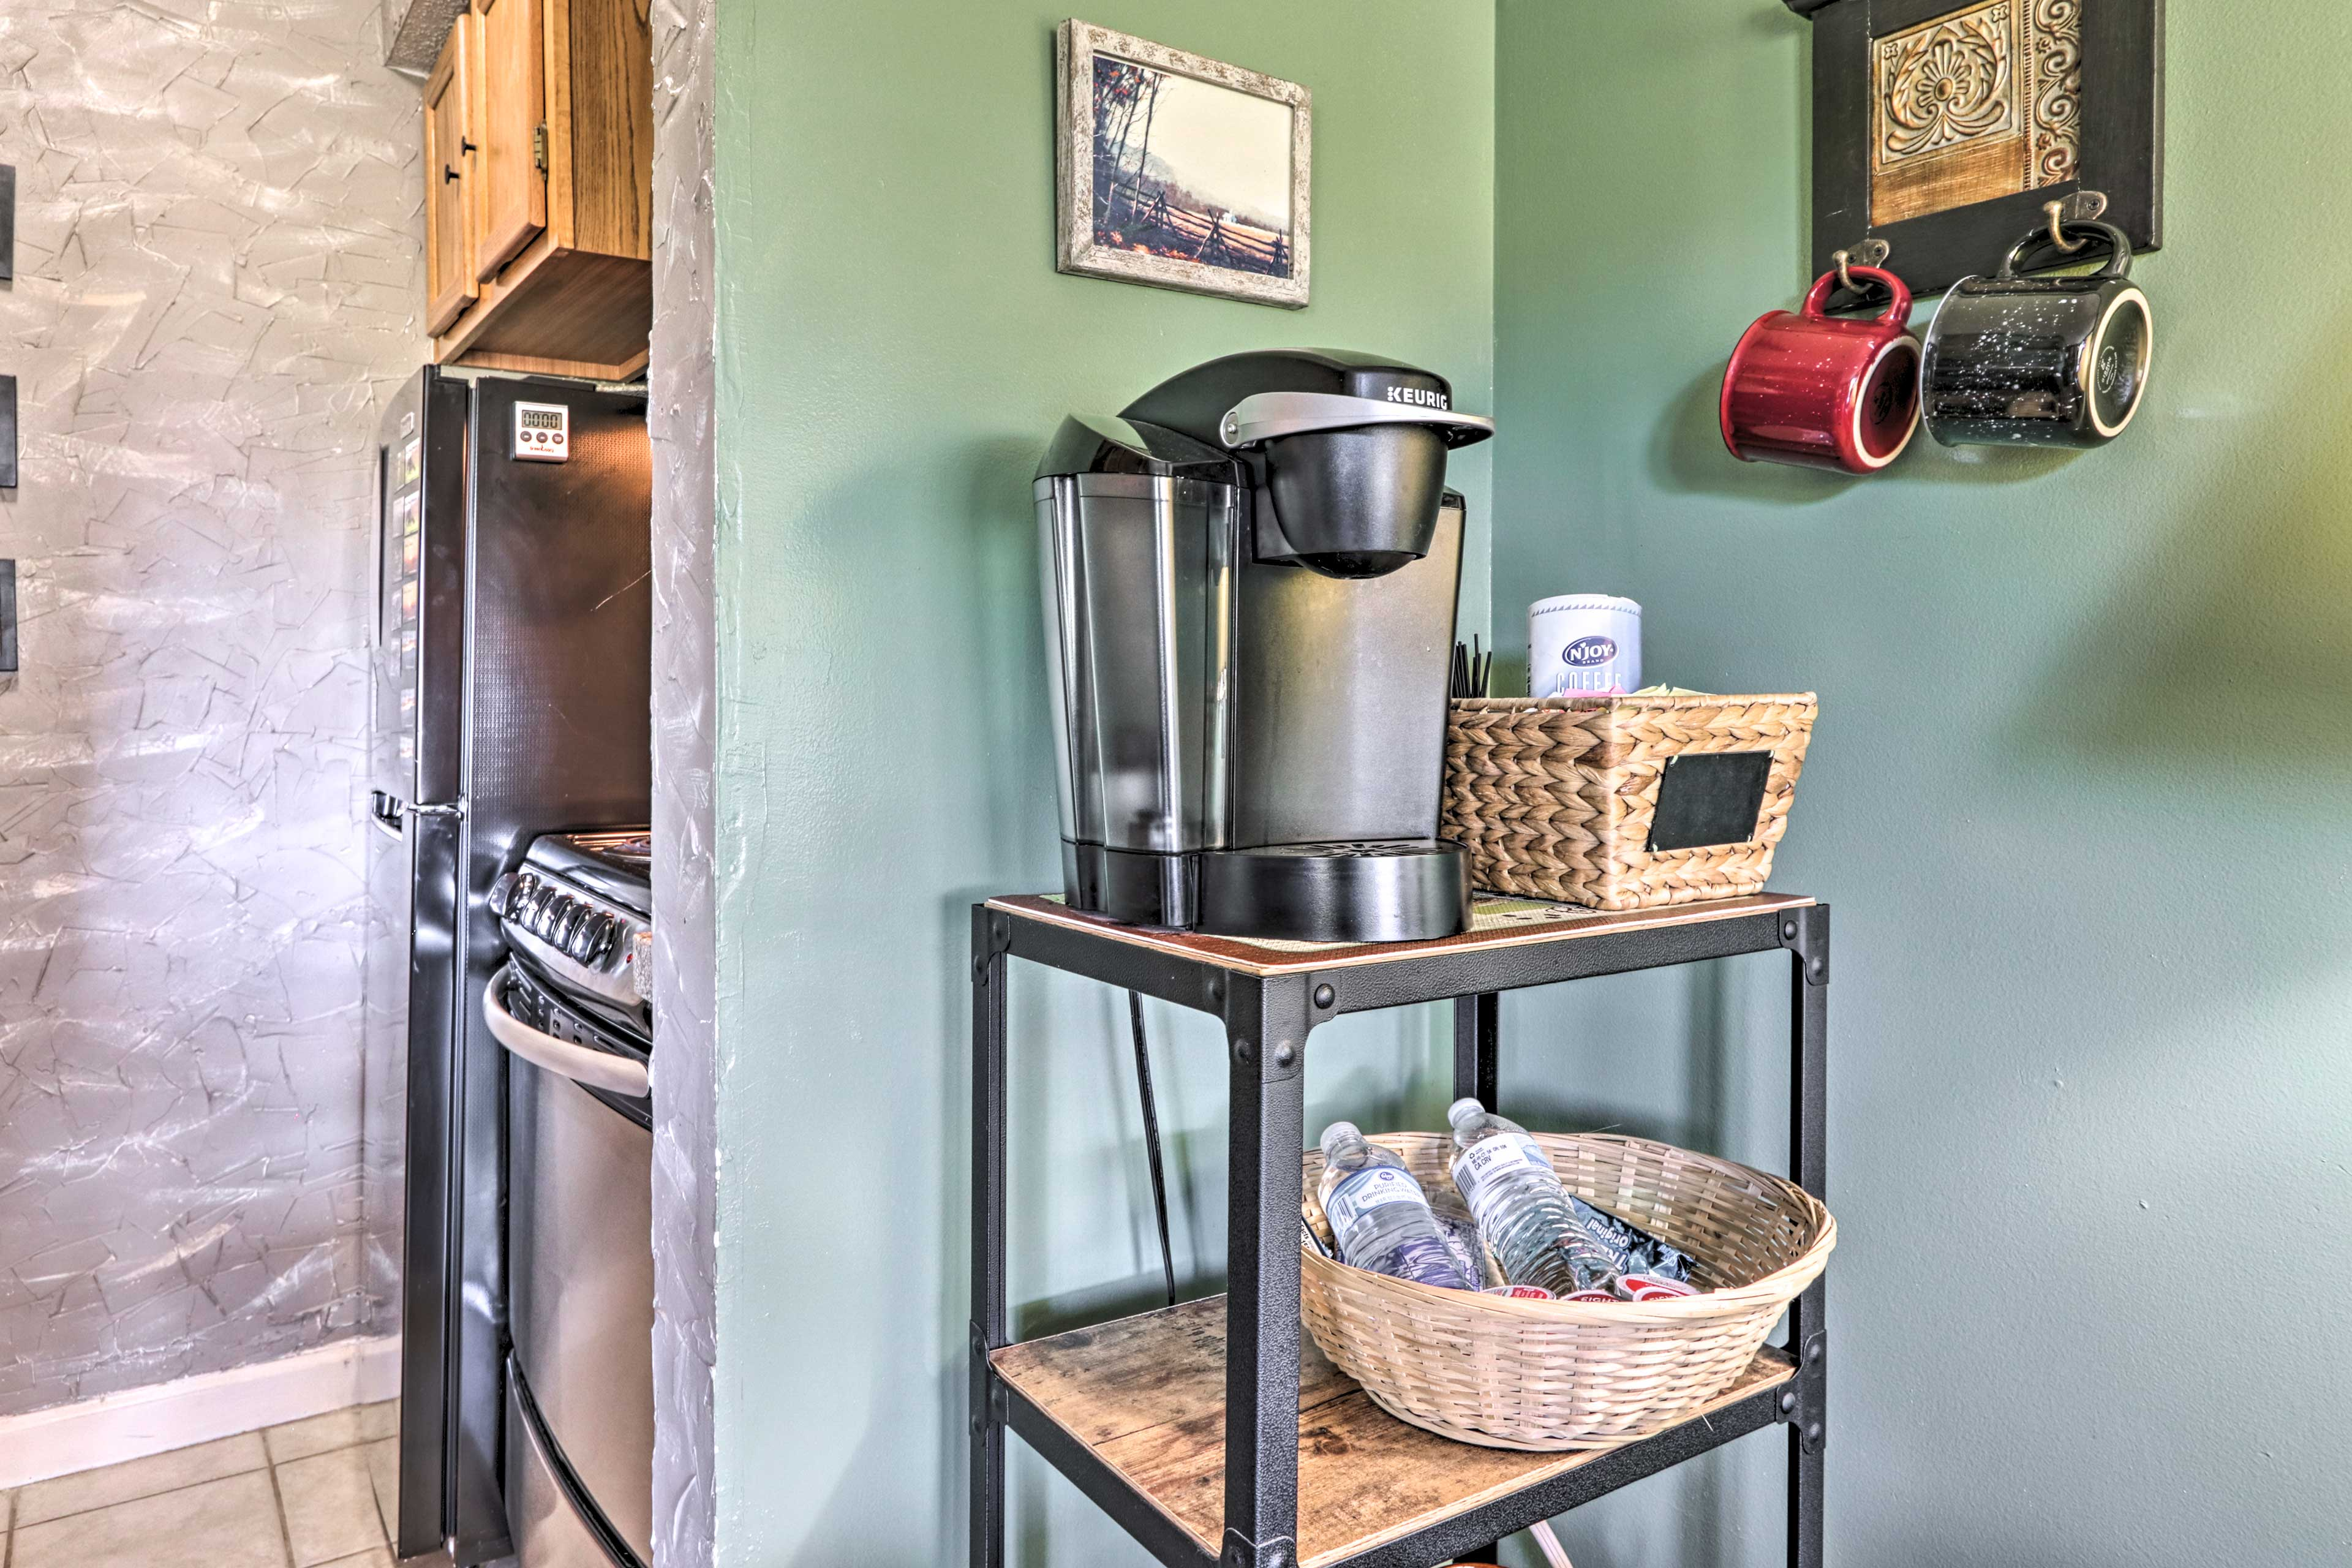 Rise and shine with coffee from the Keurig.